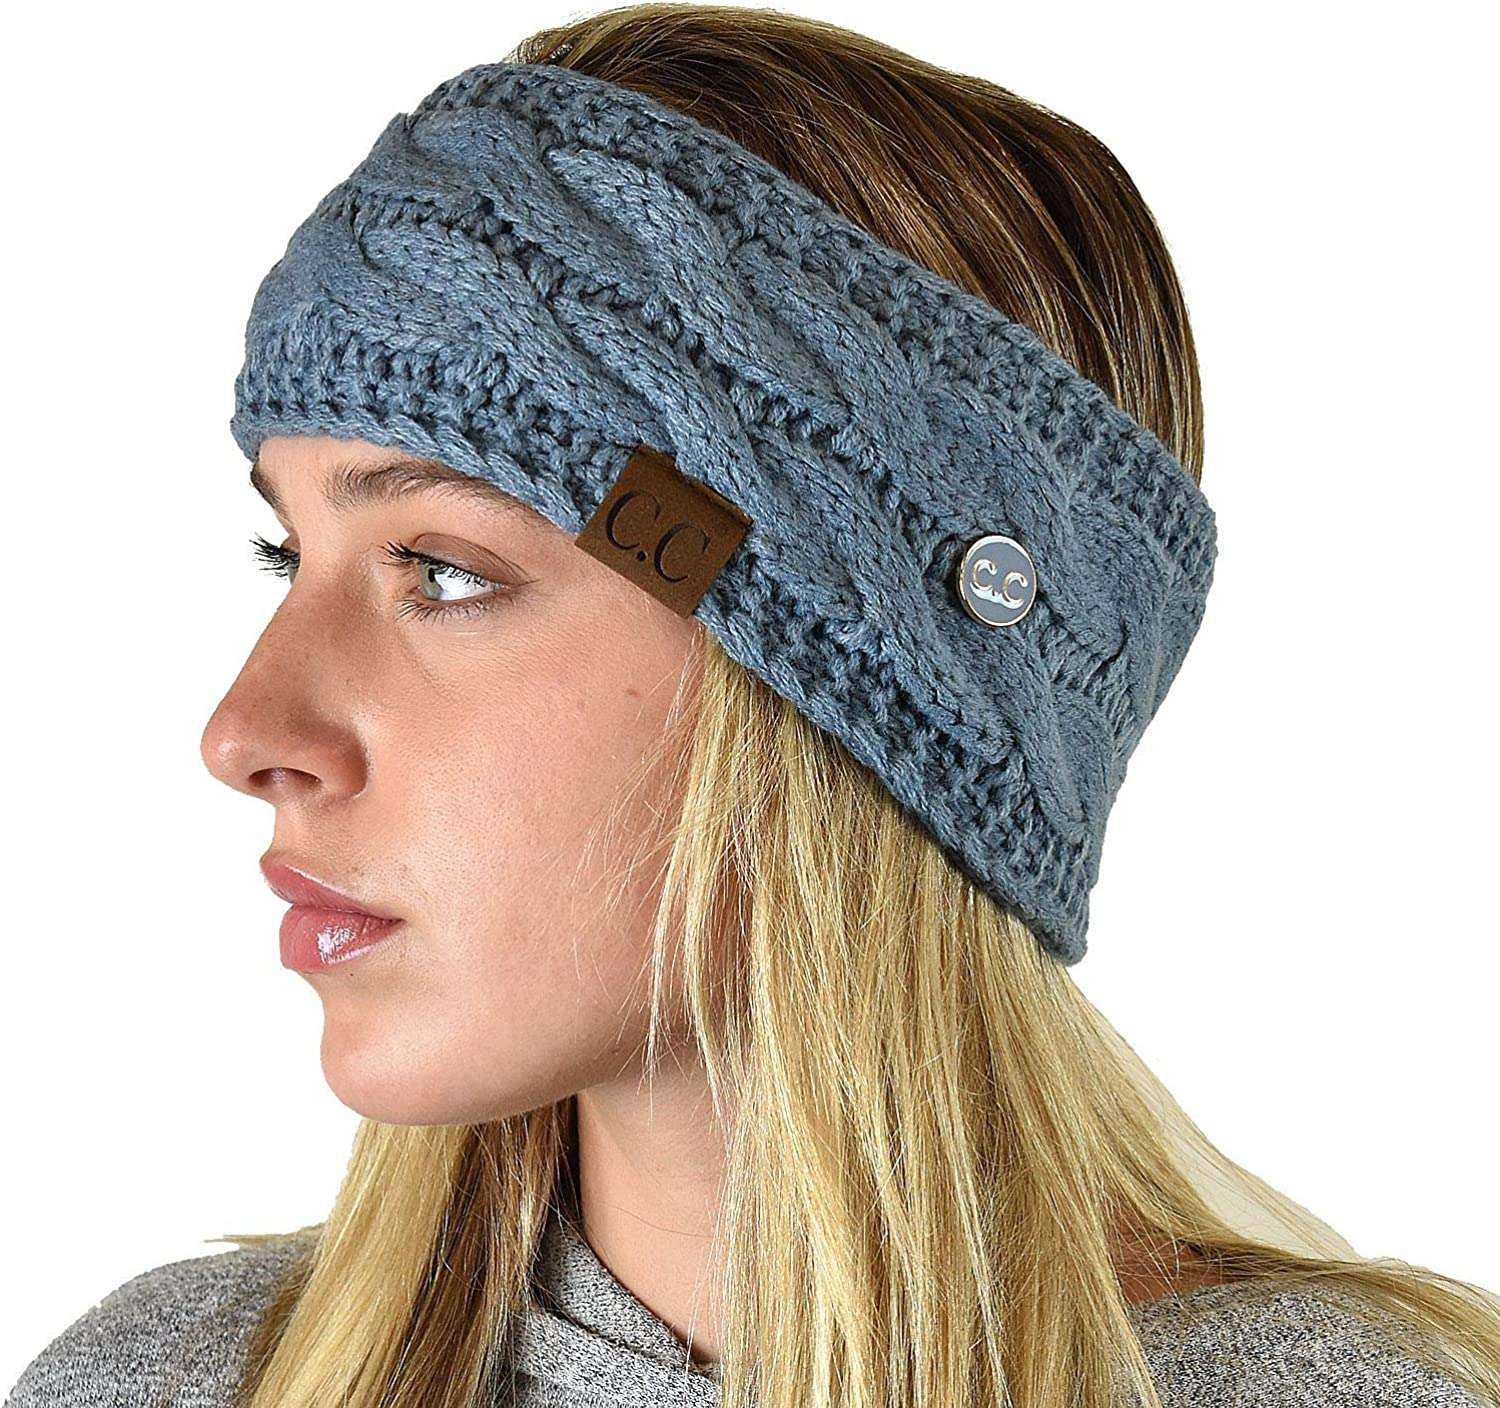 C.C Soft Stretch Cable Knit Side Epoxy Button for Mask Fuzzy Lined Ear Warmer Headband